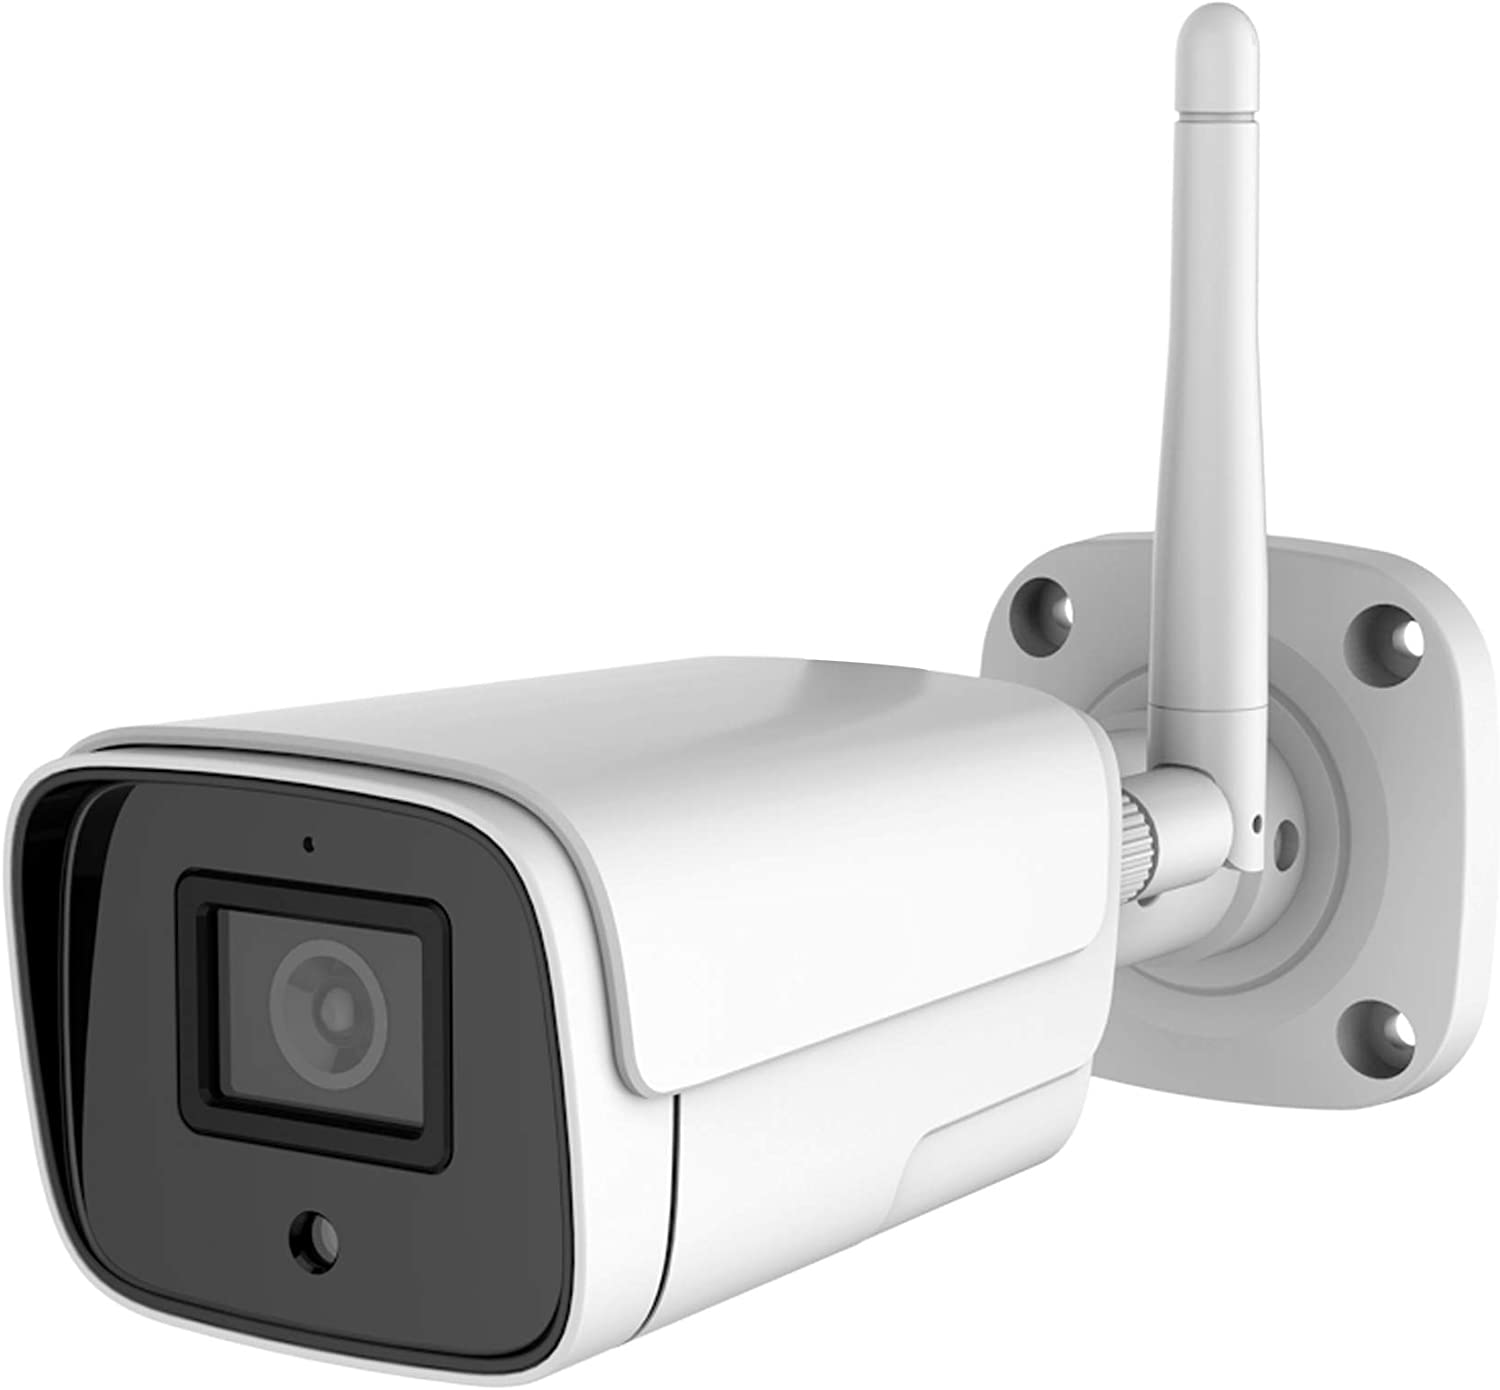 Outdoor Security Camera, Wireless WiFi Home Security Camera with 1080P Night Vision, AI Humanoid Motion Detection, Siren Alarm, IP66 Waterproof, 2-Way Audio, SD Card/Cloud Storage, Works with Alexa